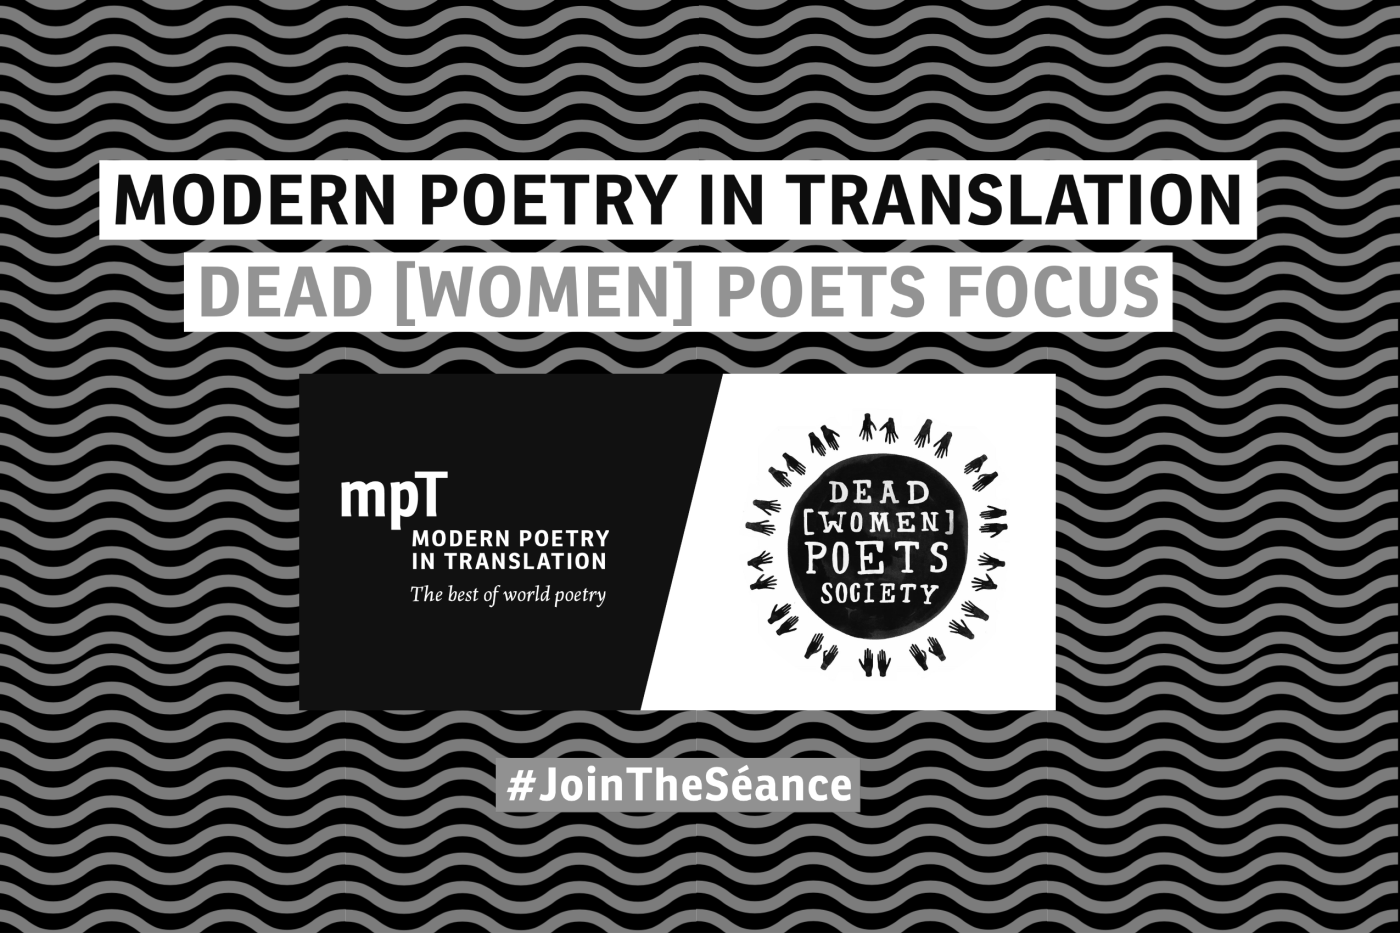 """Greyscale. A wavy background with the words """"Modern Poetry in Translation, Dead Women Poets Focus."""" The MPT logo and the dead women poets society logo are in the centre, and there is a hashtag that says join the seance."""